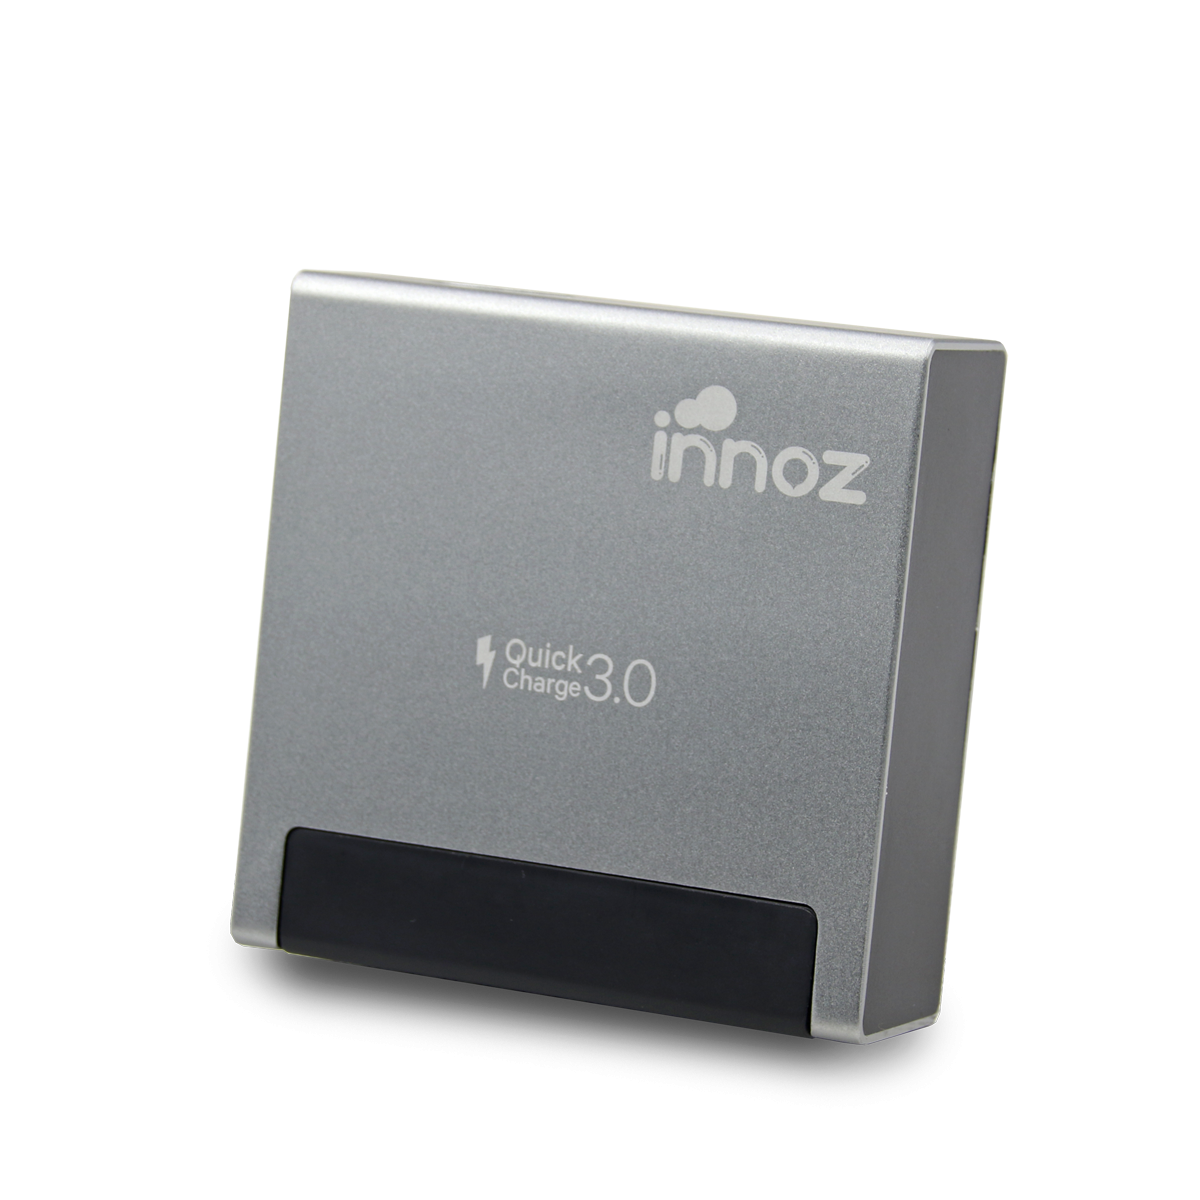 """Innoz Q4S 4-Port """"Quick Charge 3.0"""" USB Smart Charger"""